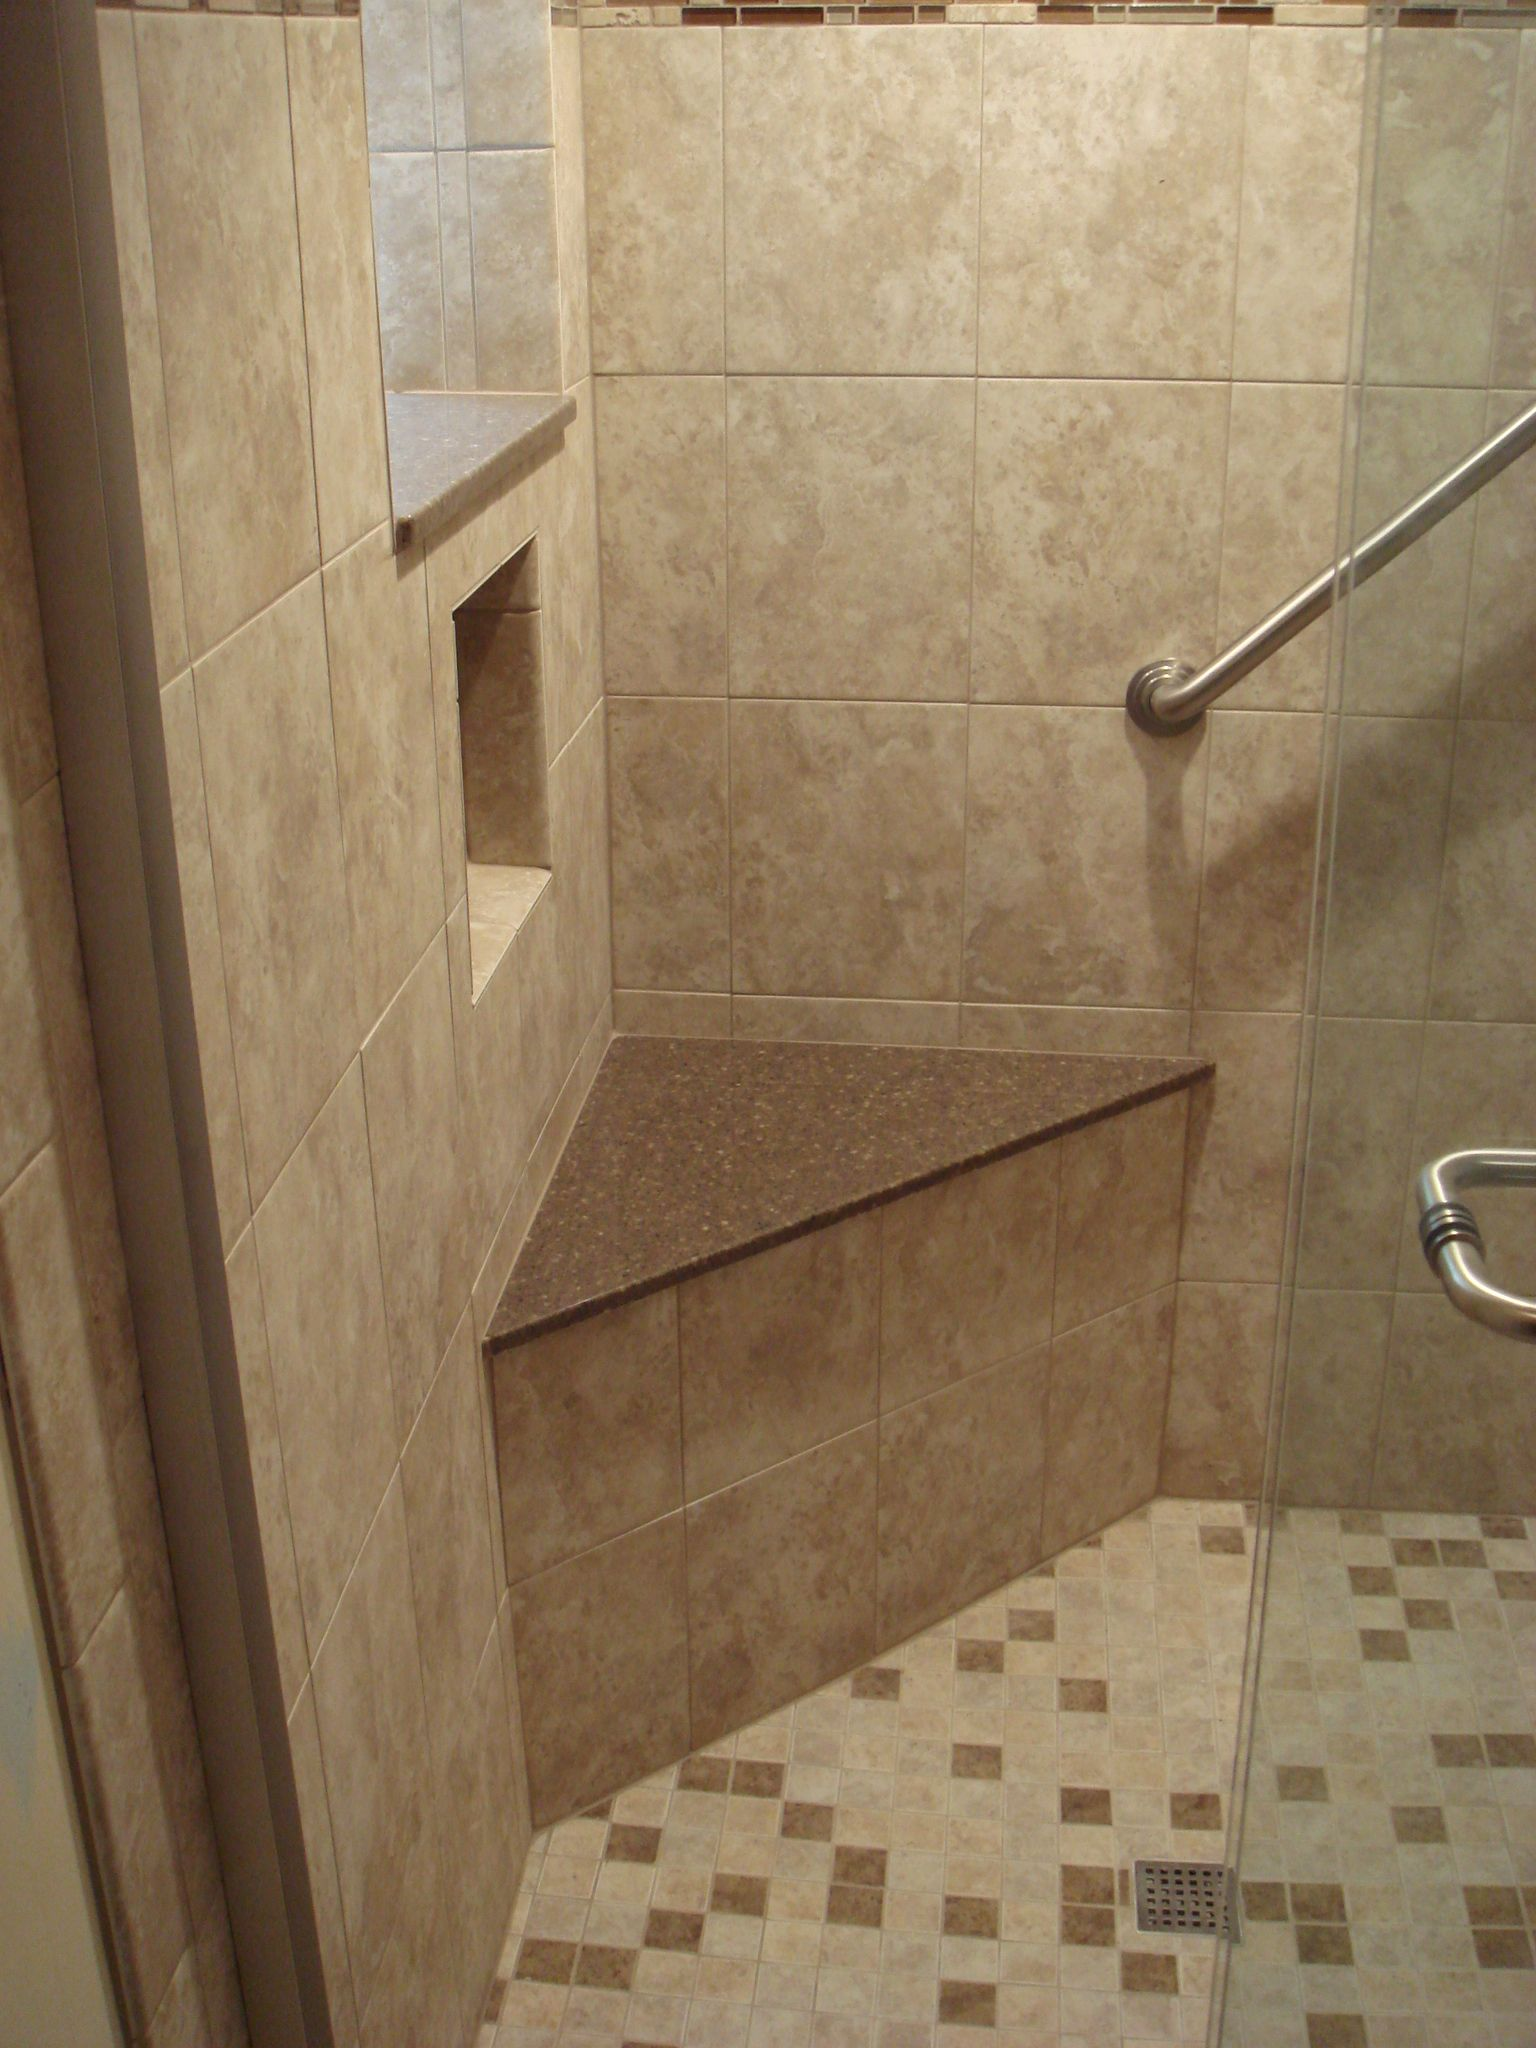 Shower Corner Seat Cubby Hole Shelf Grab Bar Corner Shower Bench Shower Bench Corner Shower